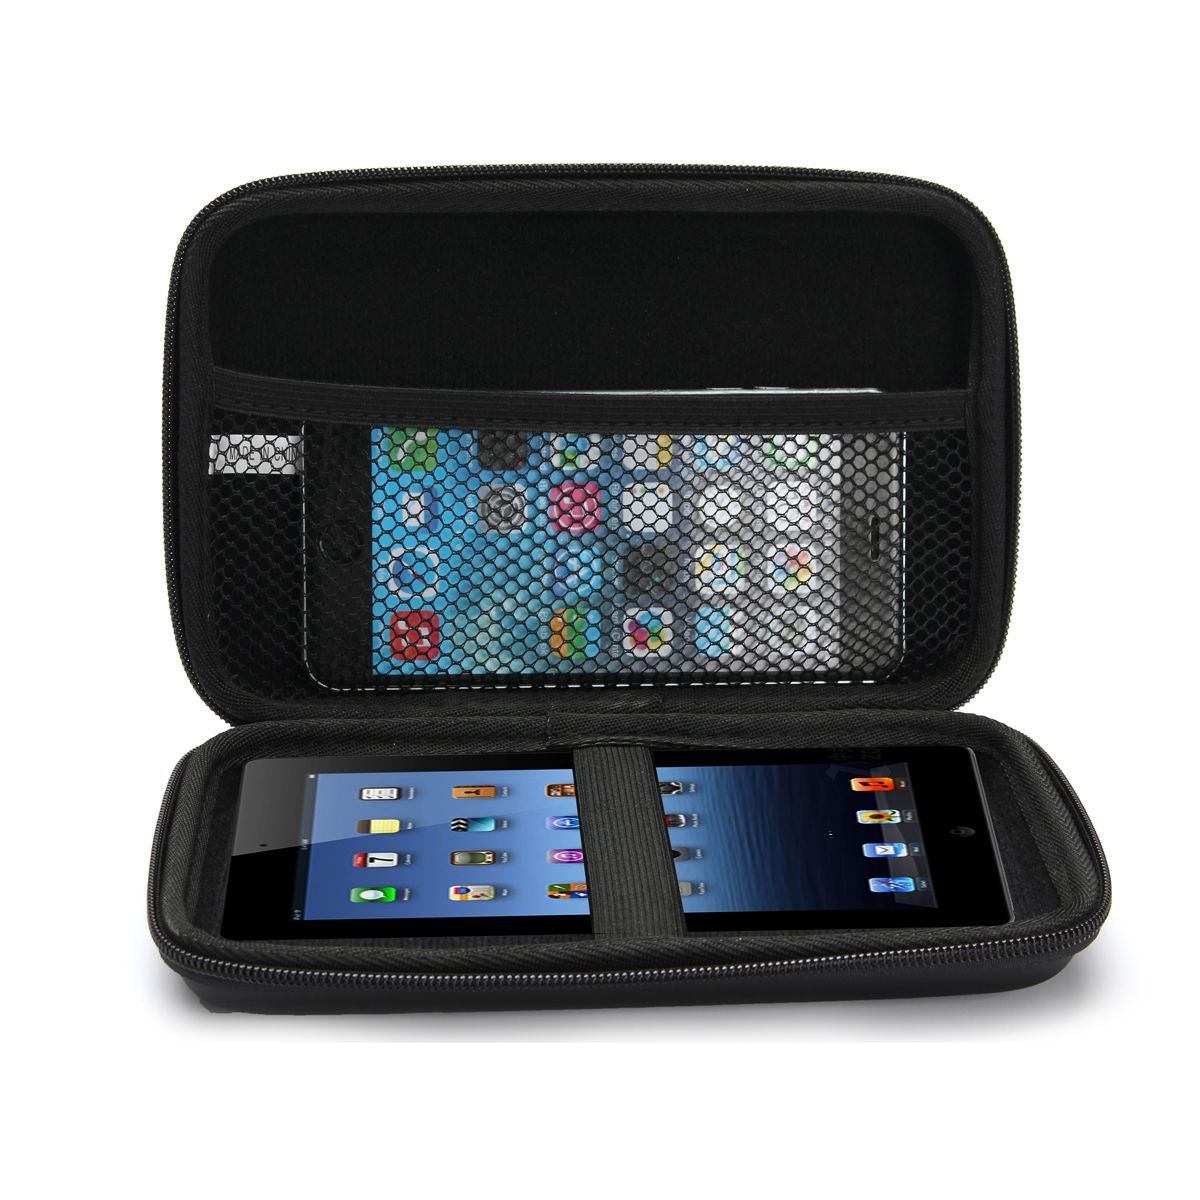 Buy Hard Carry Anti-Shock Travel Case Bag For 6/7 Inch GPS Navigation iPhone iPad Tablet Device